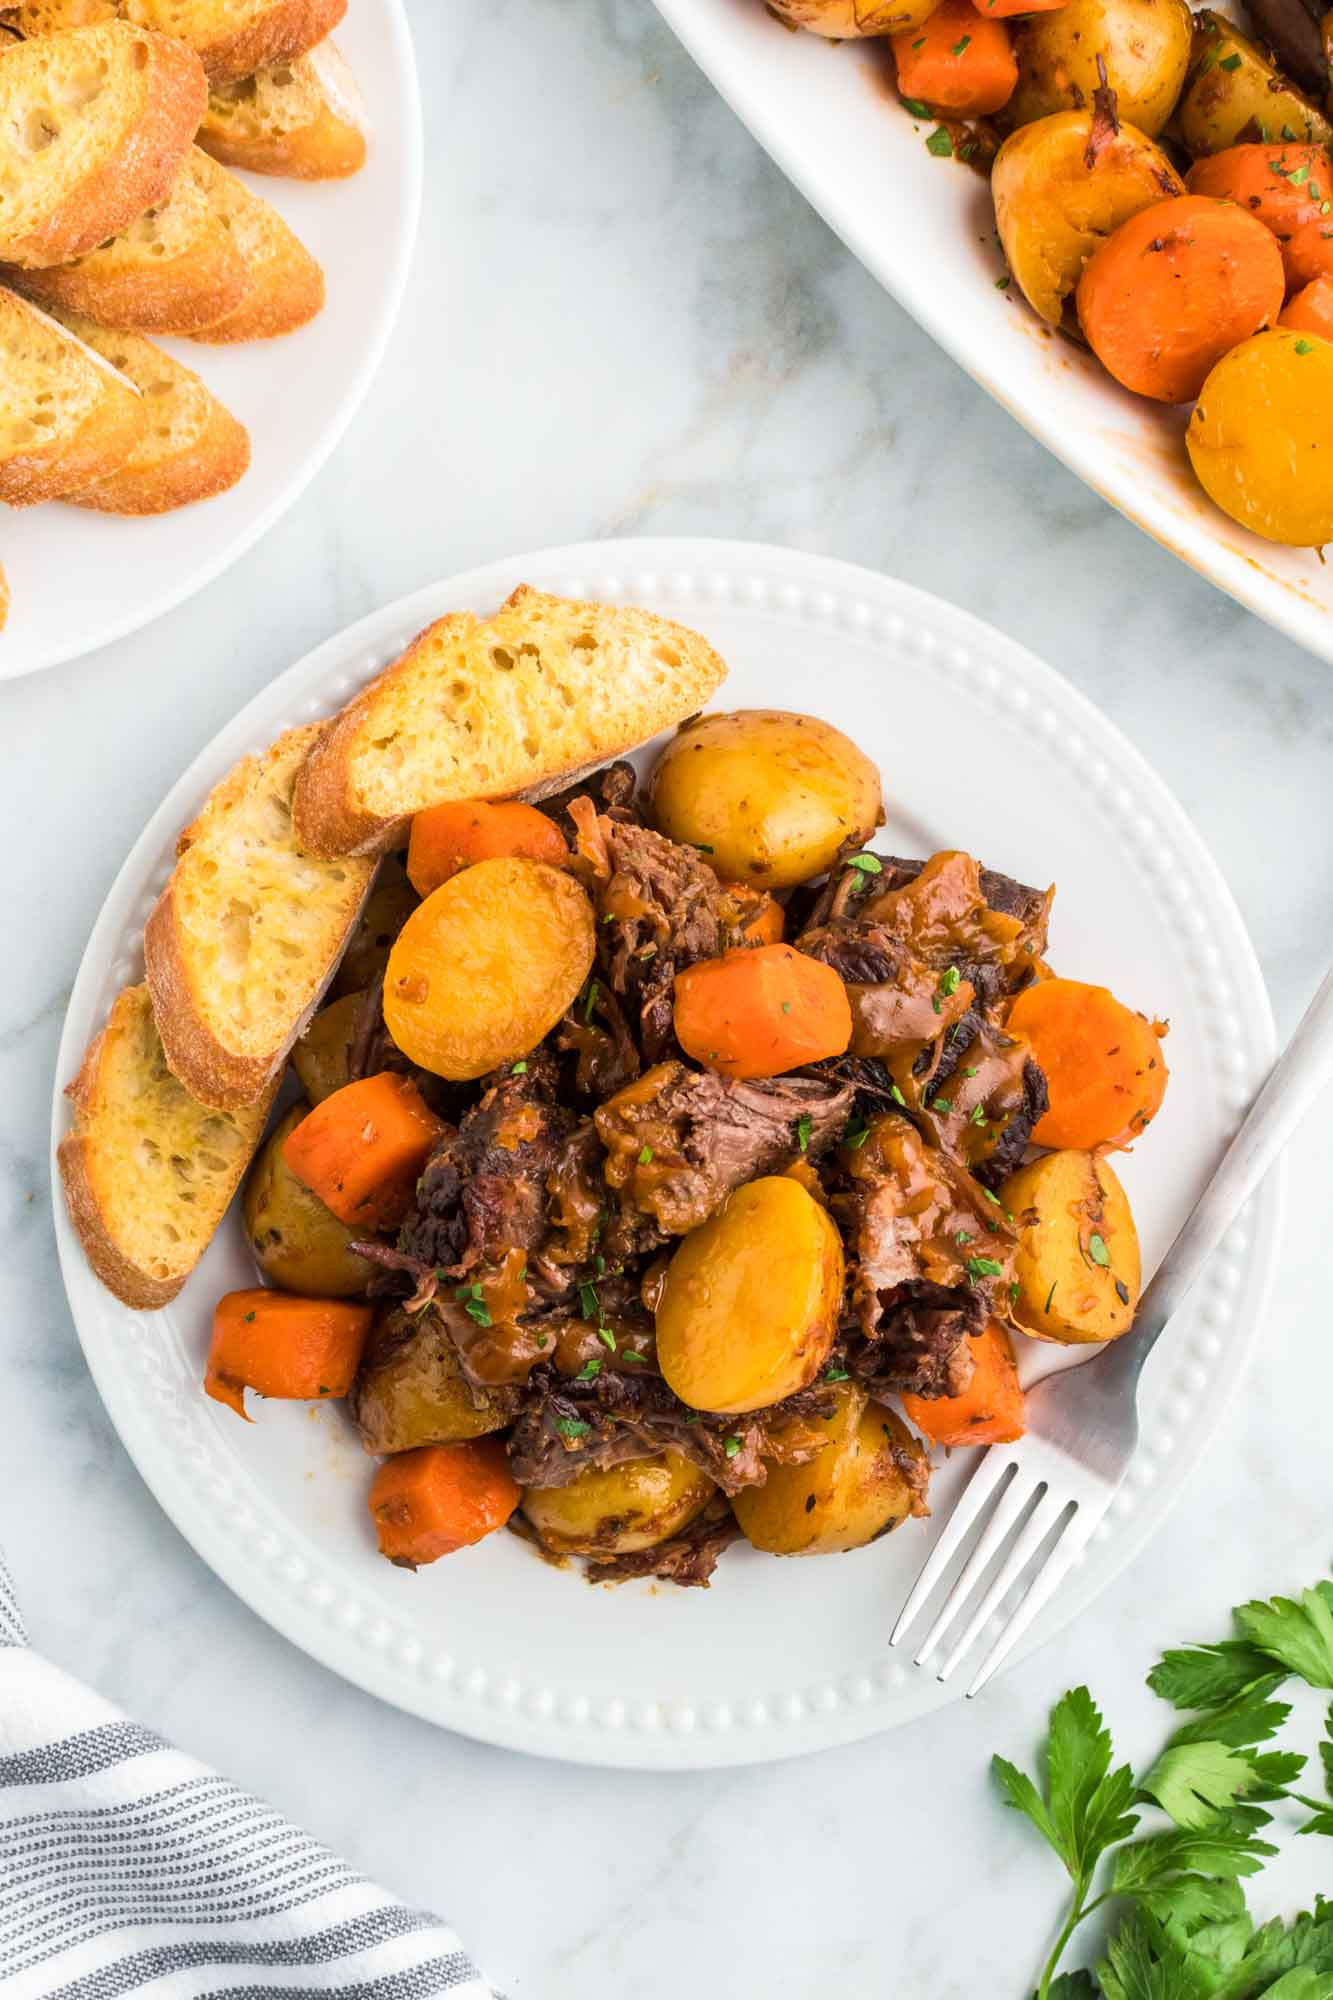 Pot roast served in a white plate with garlic bread on the side